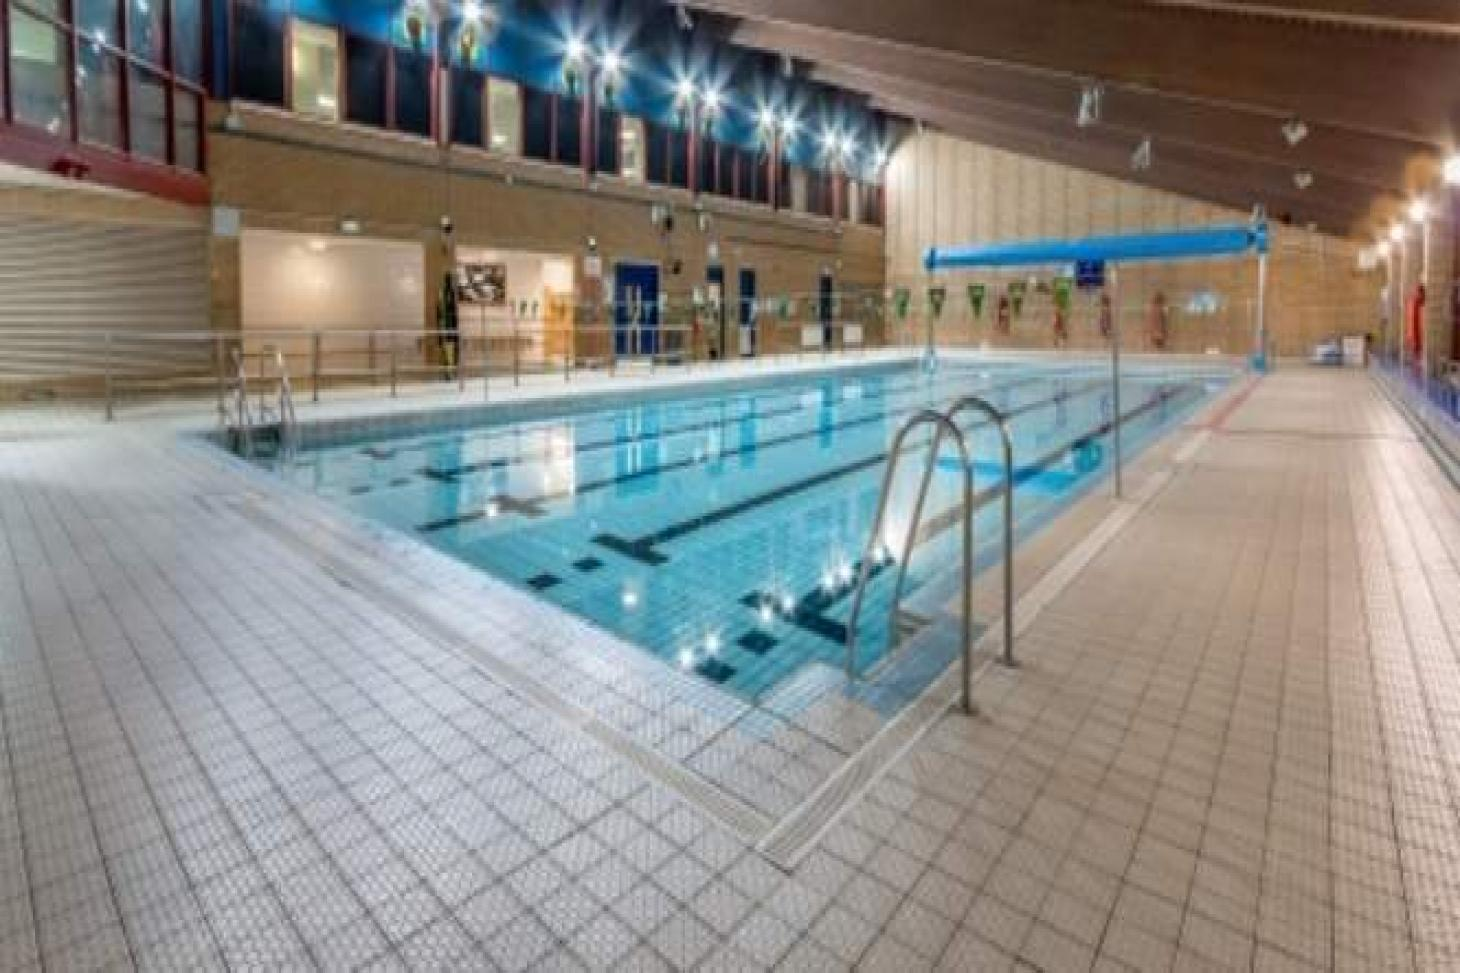 Canons Leisure Centre Indoor swimming pool